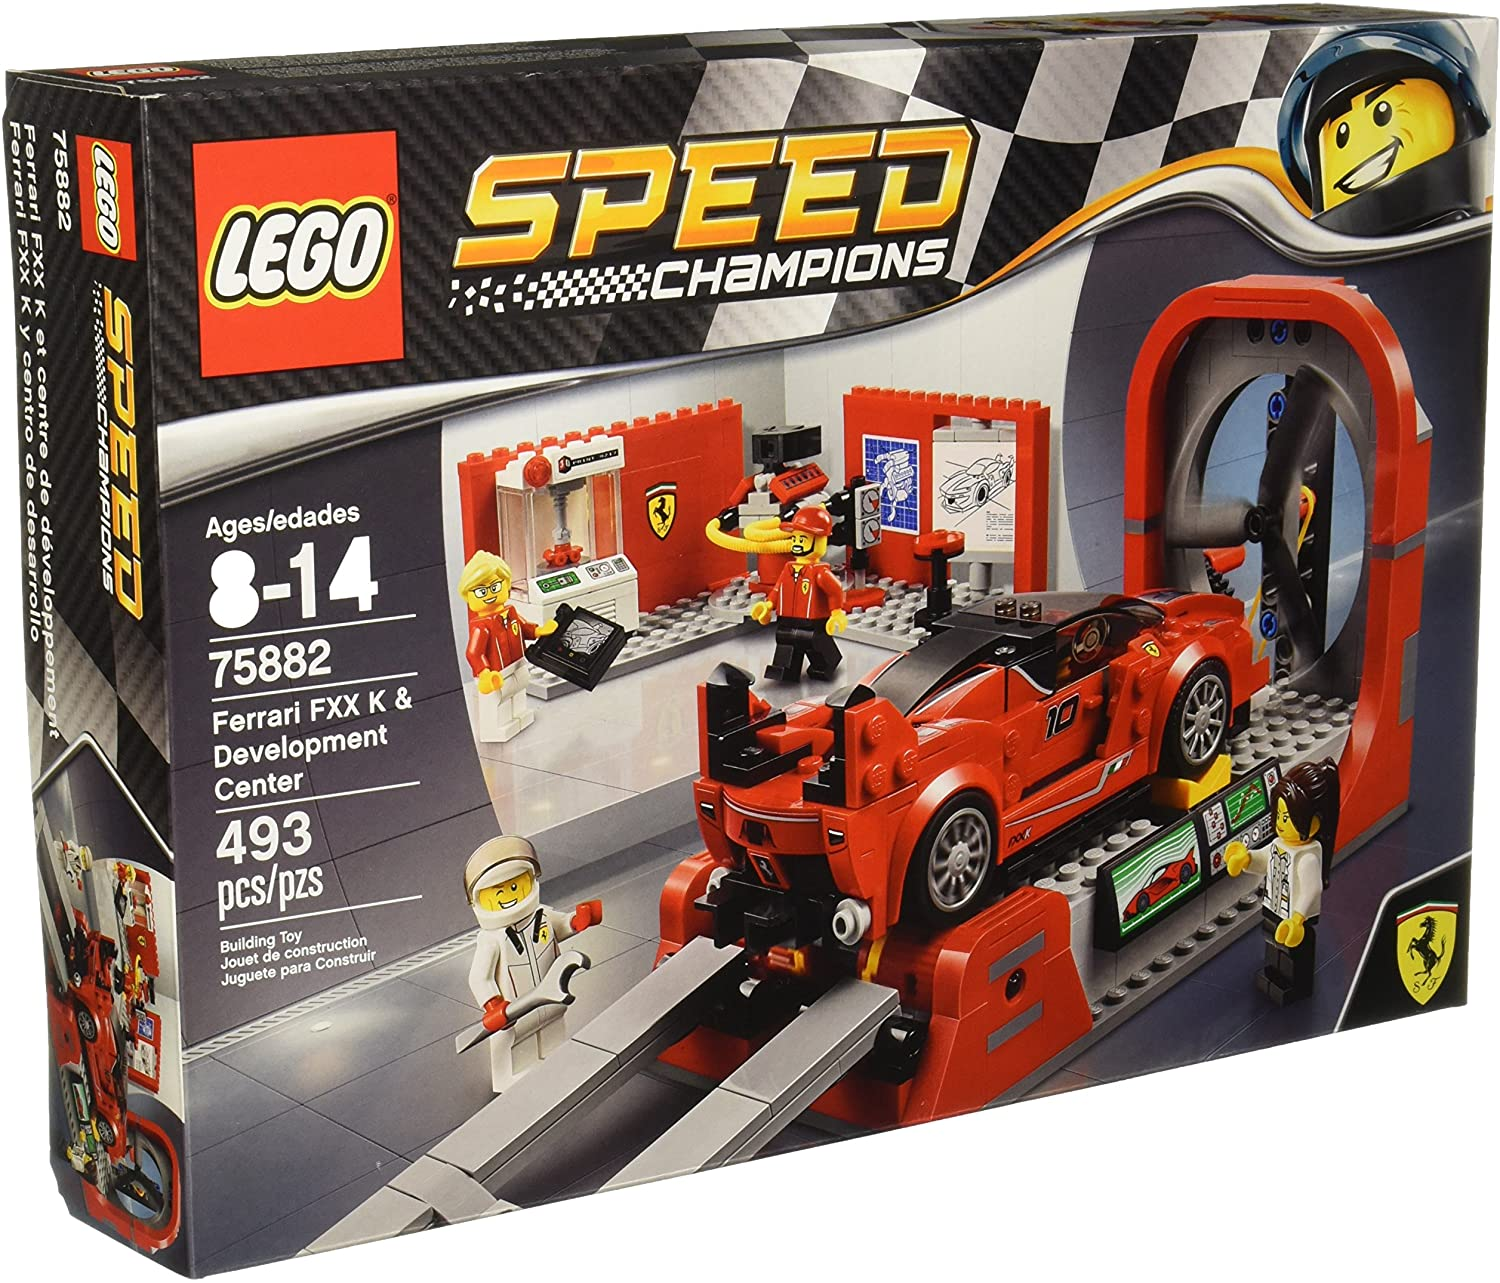 LEGO Speed Champions Ferrari FXX K & Development 75882